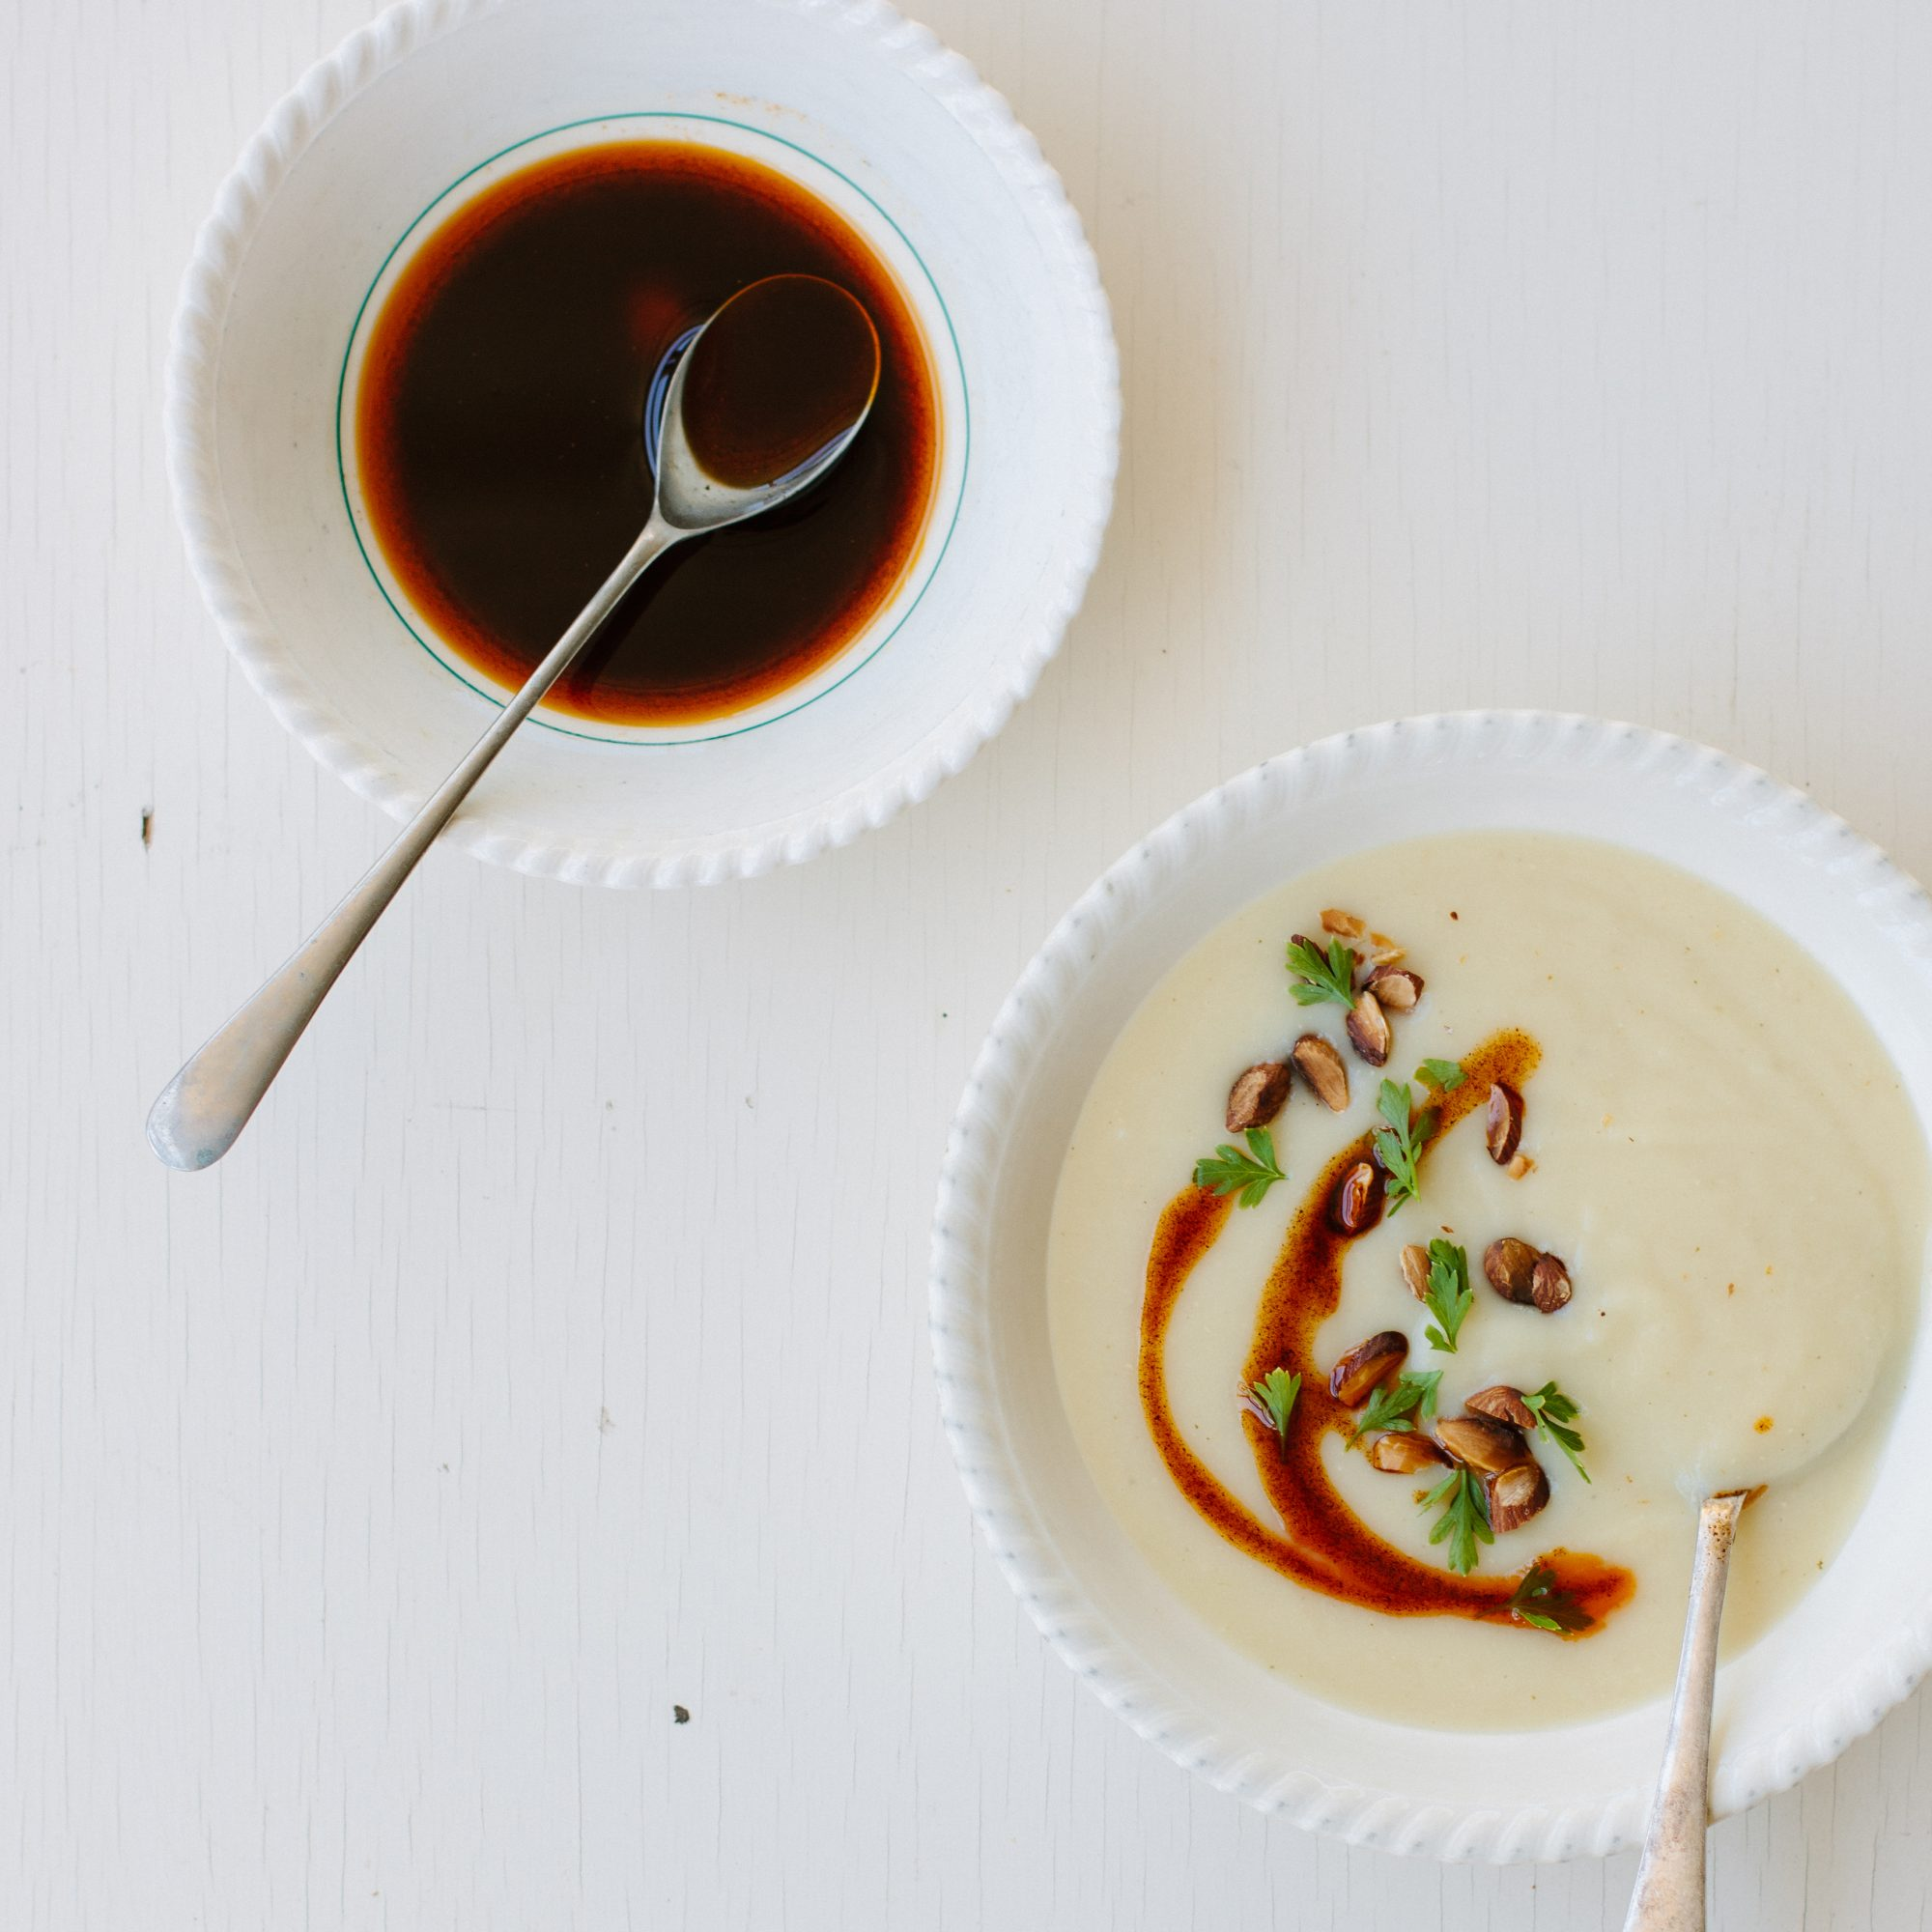 Creamy Parsnip Soup with Smoked Paprika Oil and Toasted Almonds